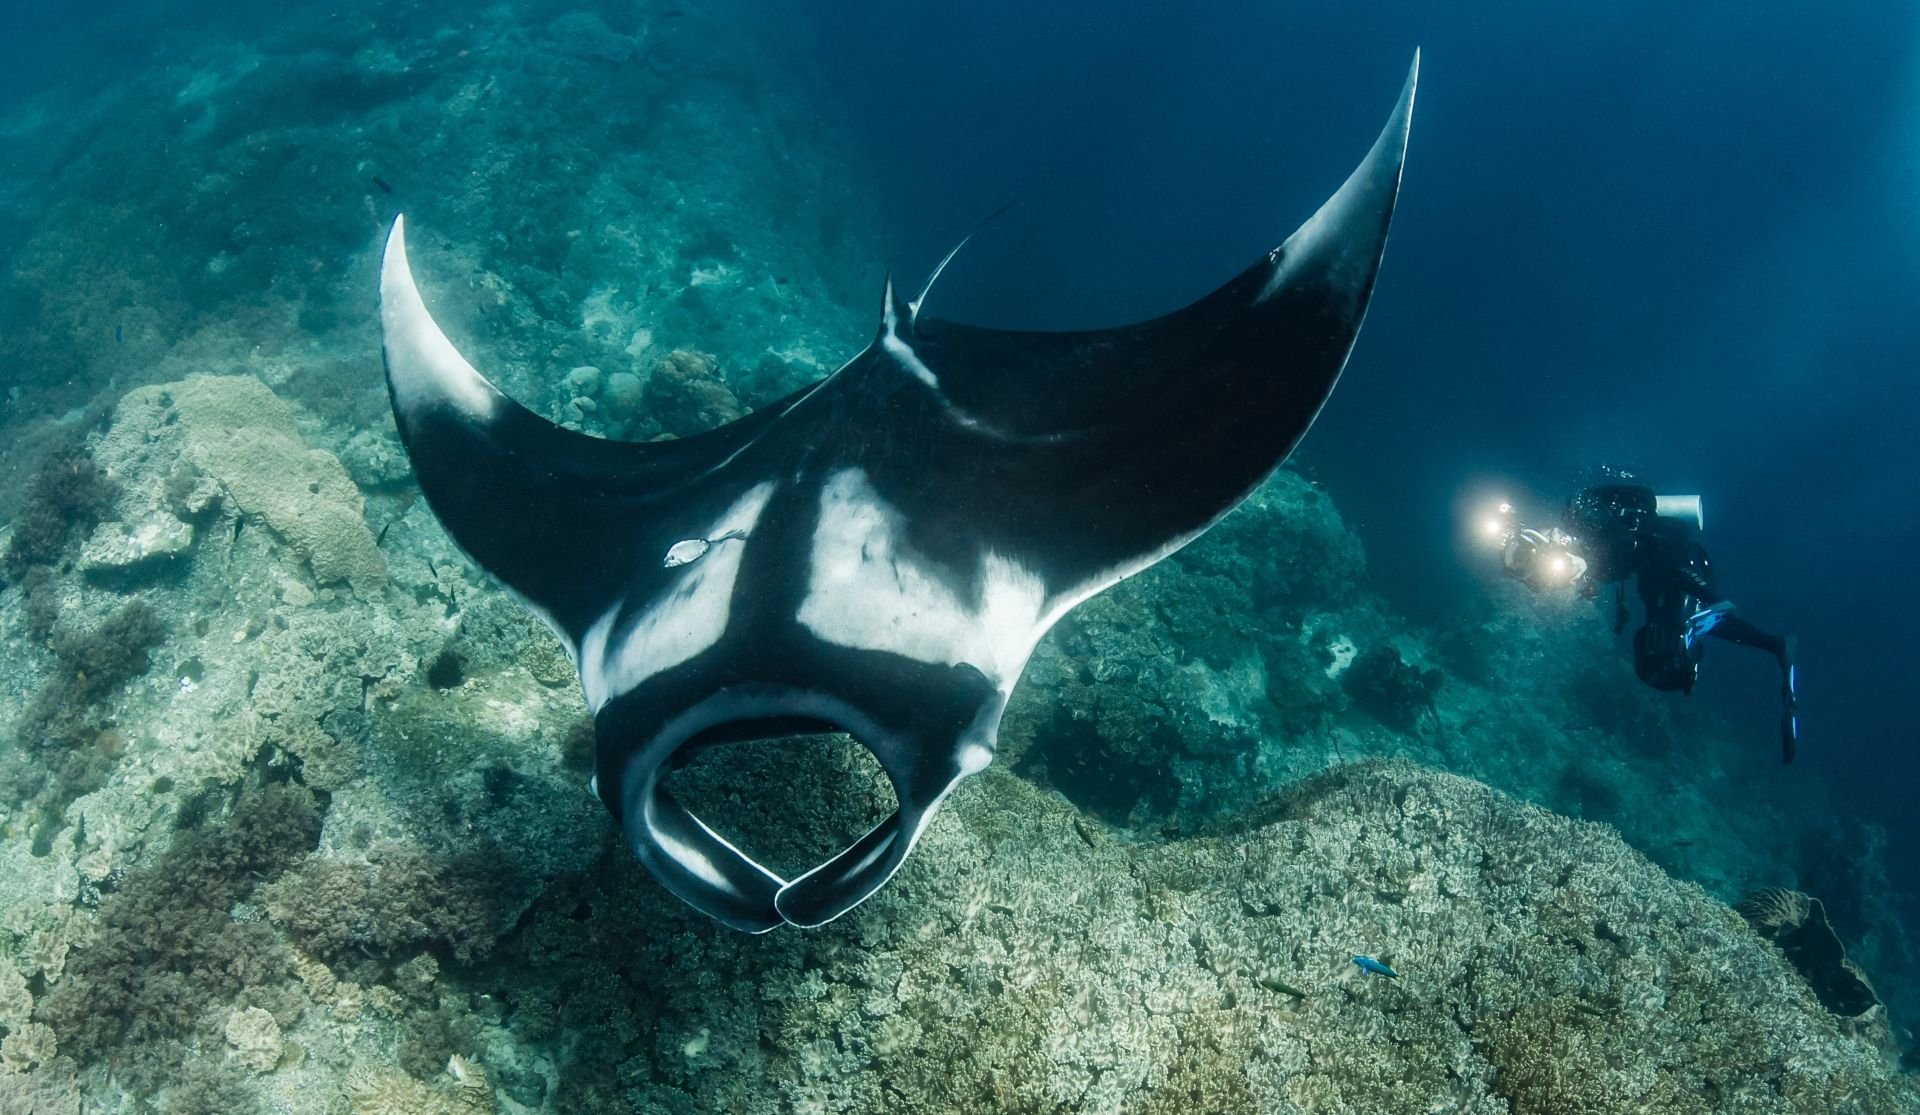 Meet the Mantas (Photo Credit Shawn Heinrichs)